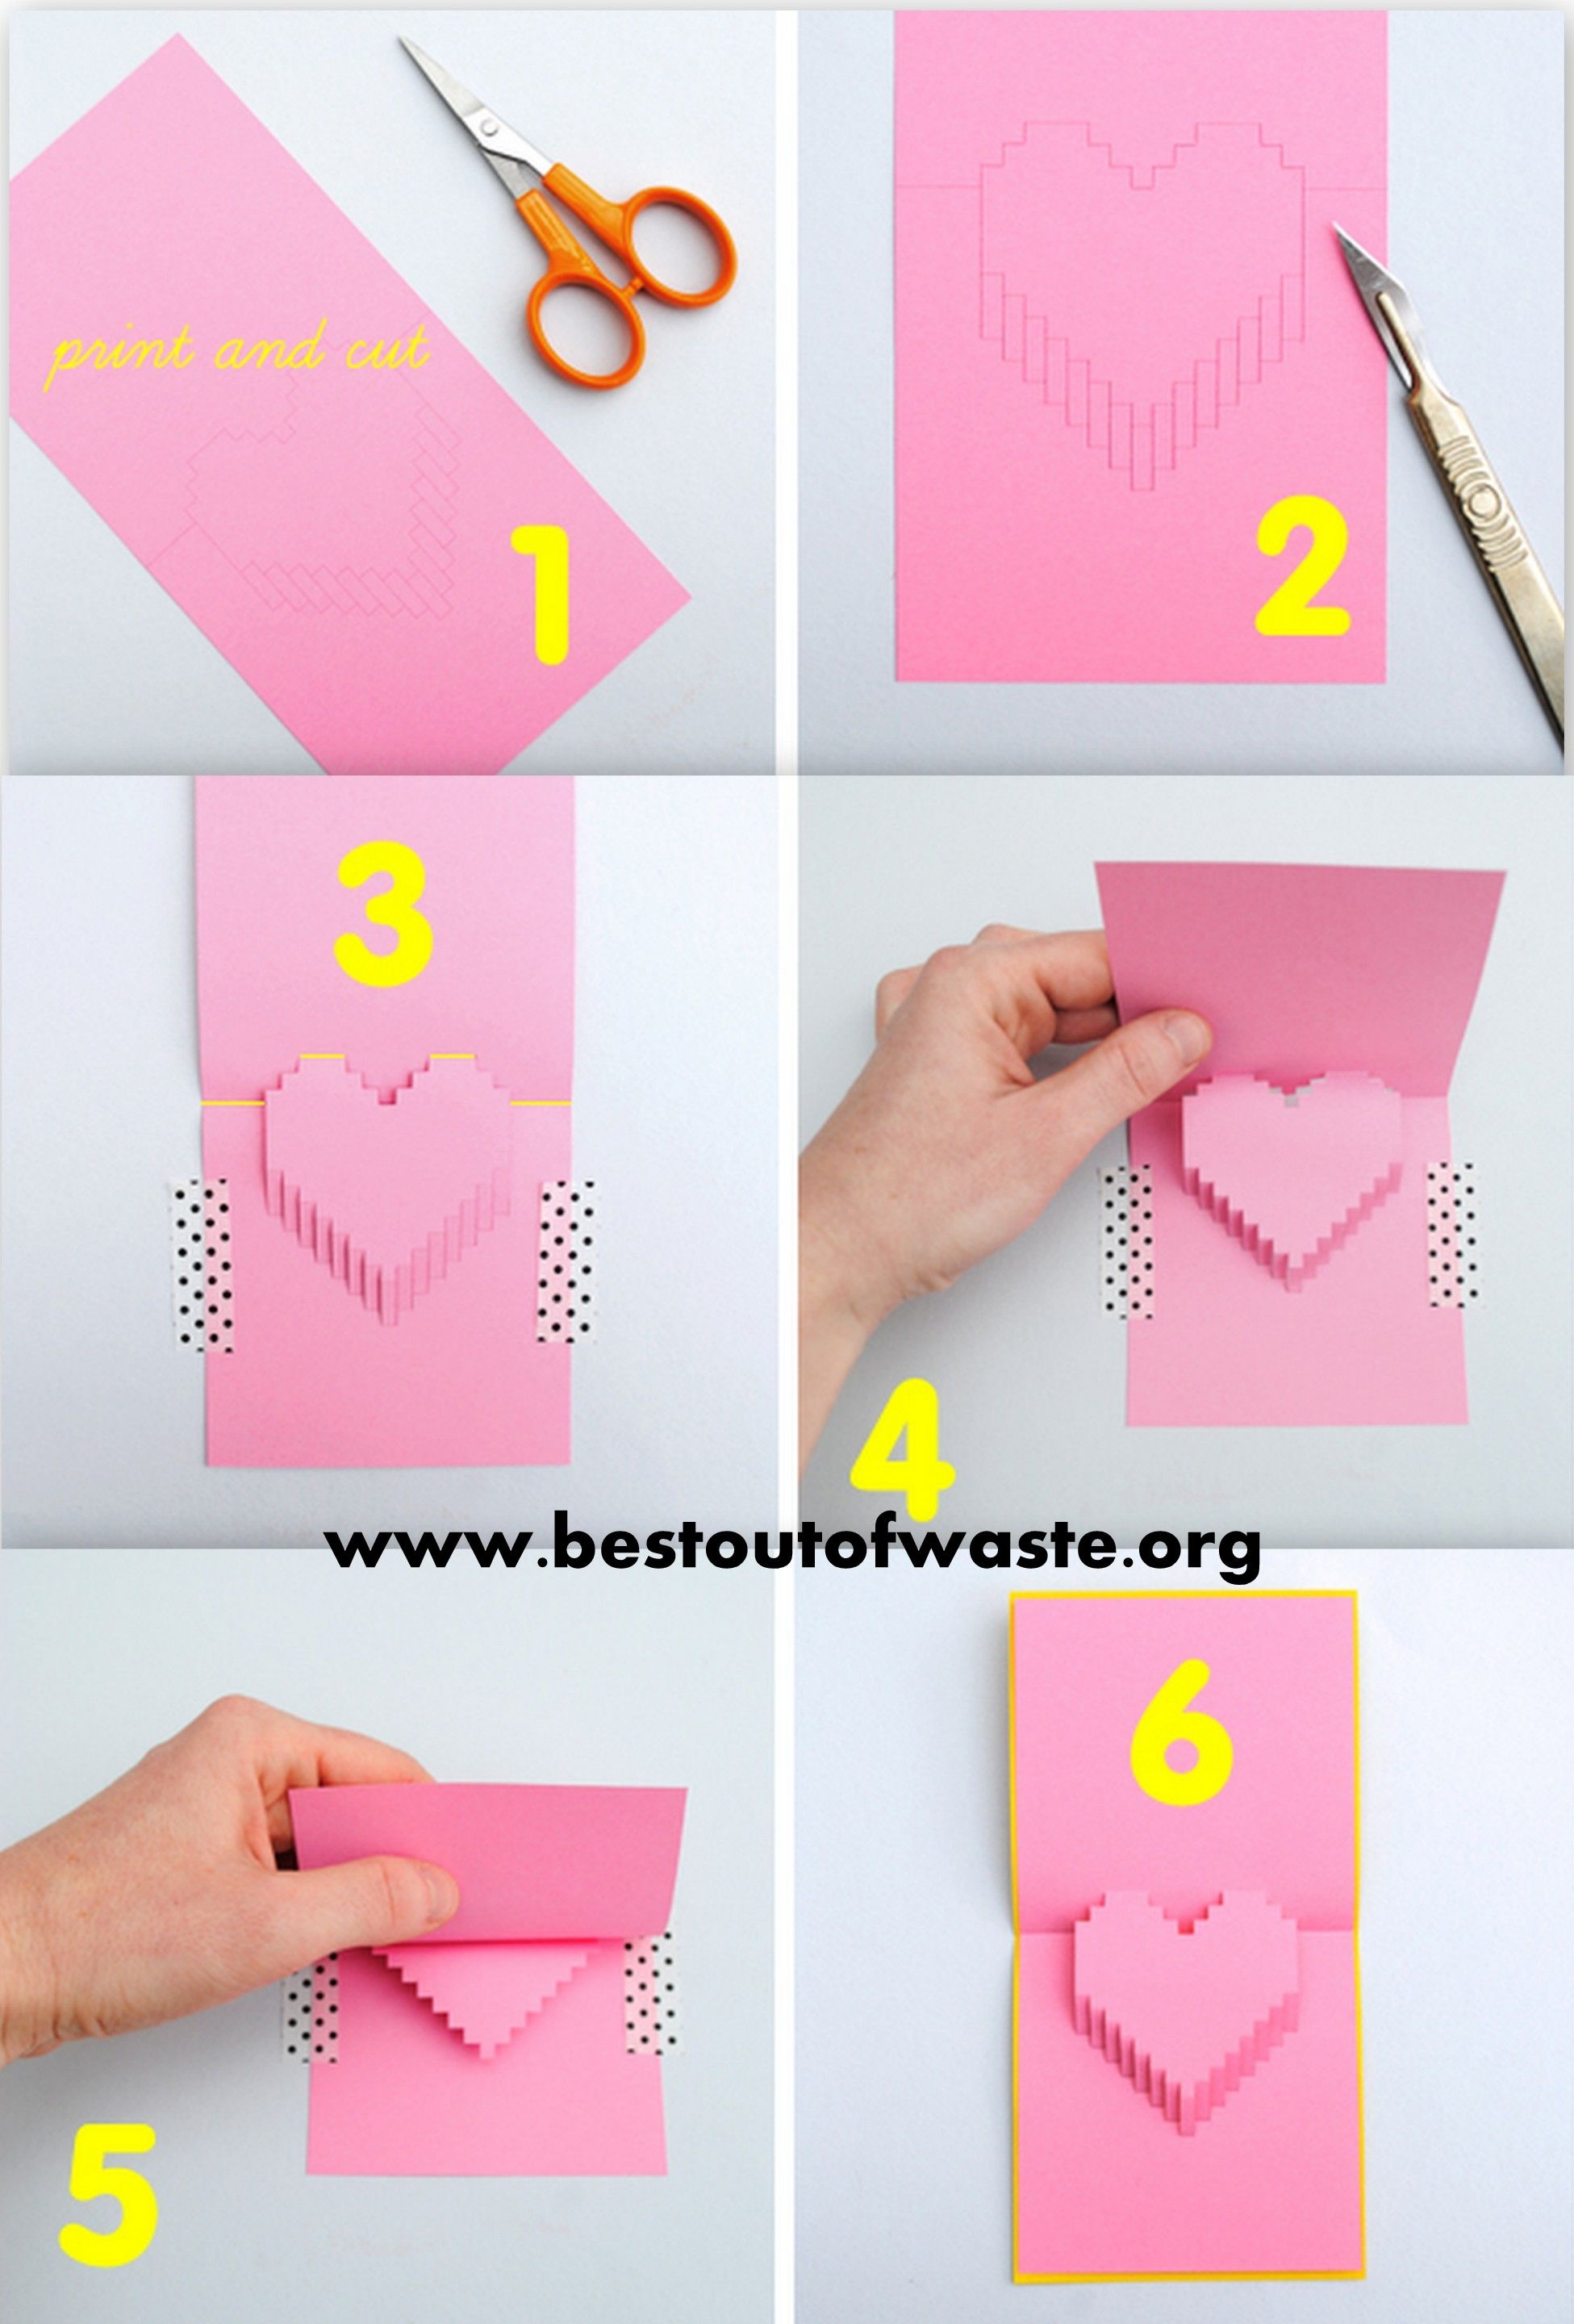 Heart shaped pop up card valentines day 6 diy ideas for kids on heart shaped pop up card valentines day 6 diy ideas for kids on valentines day 2014 kristyandbryce Choice Image